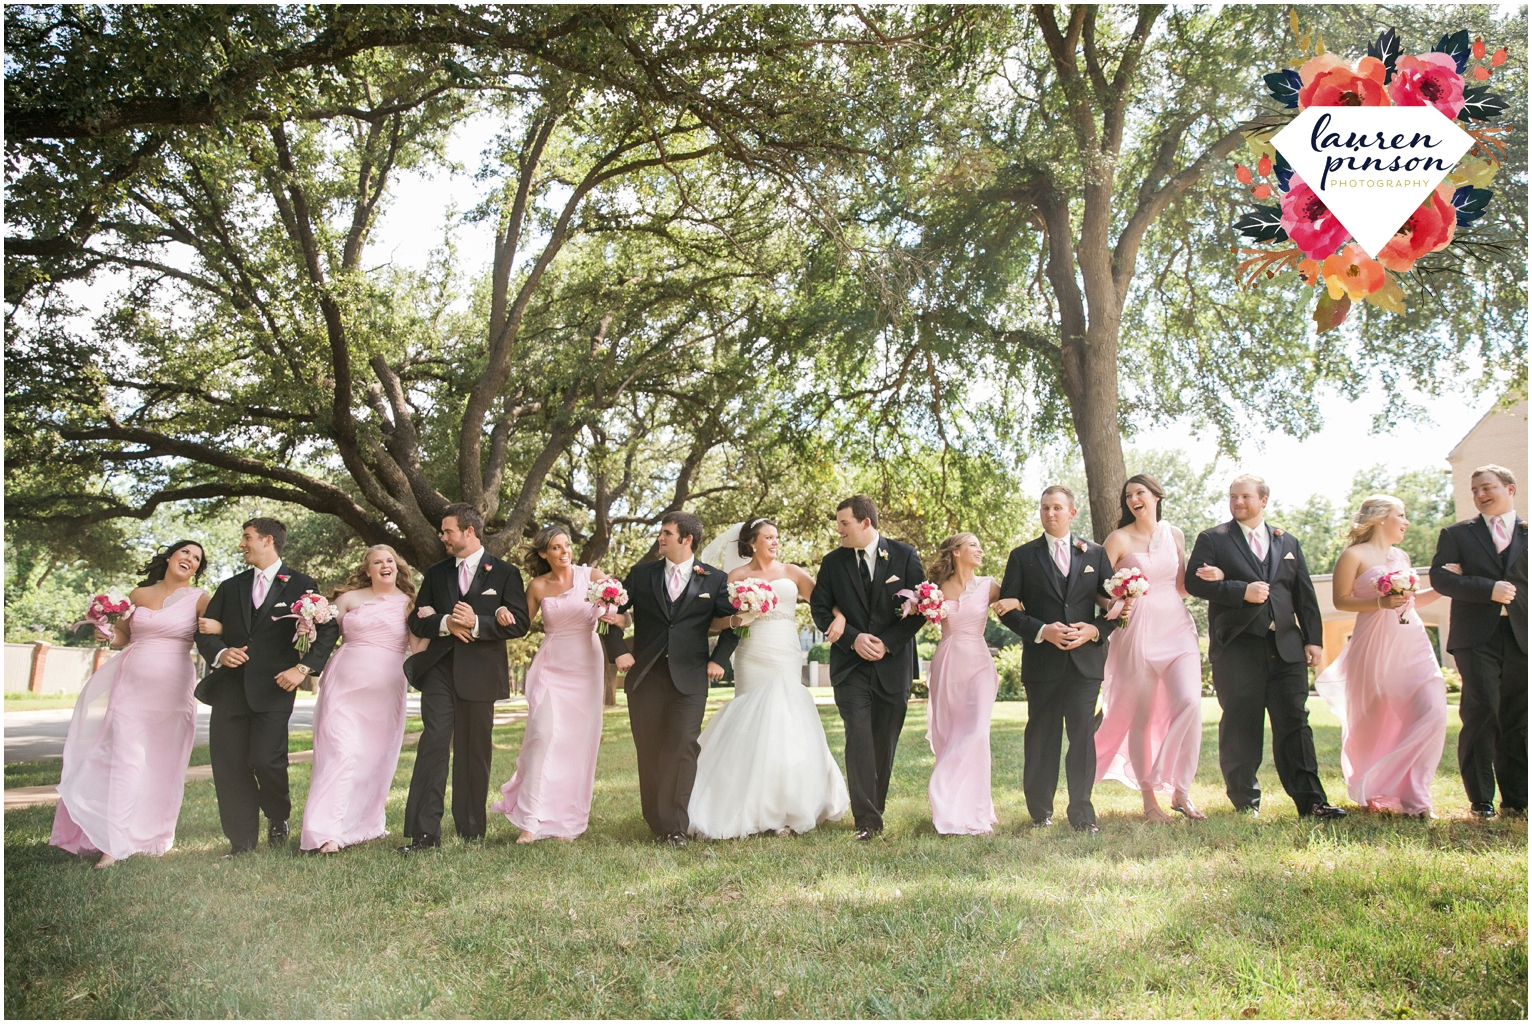 wichita-falls-wedding-photographer-kemp-center-at-the-forum-photography-two-clever-chicks_1020.jpg